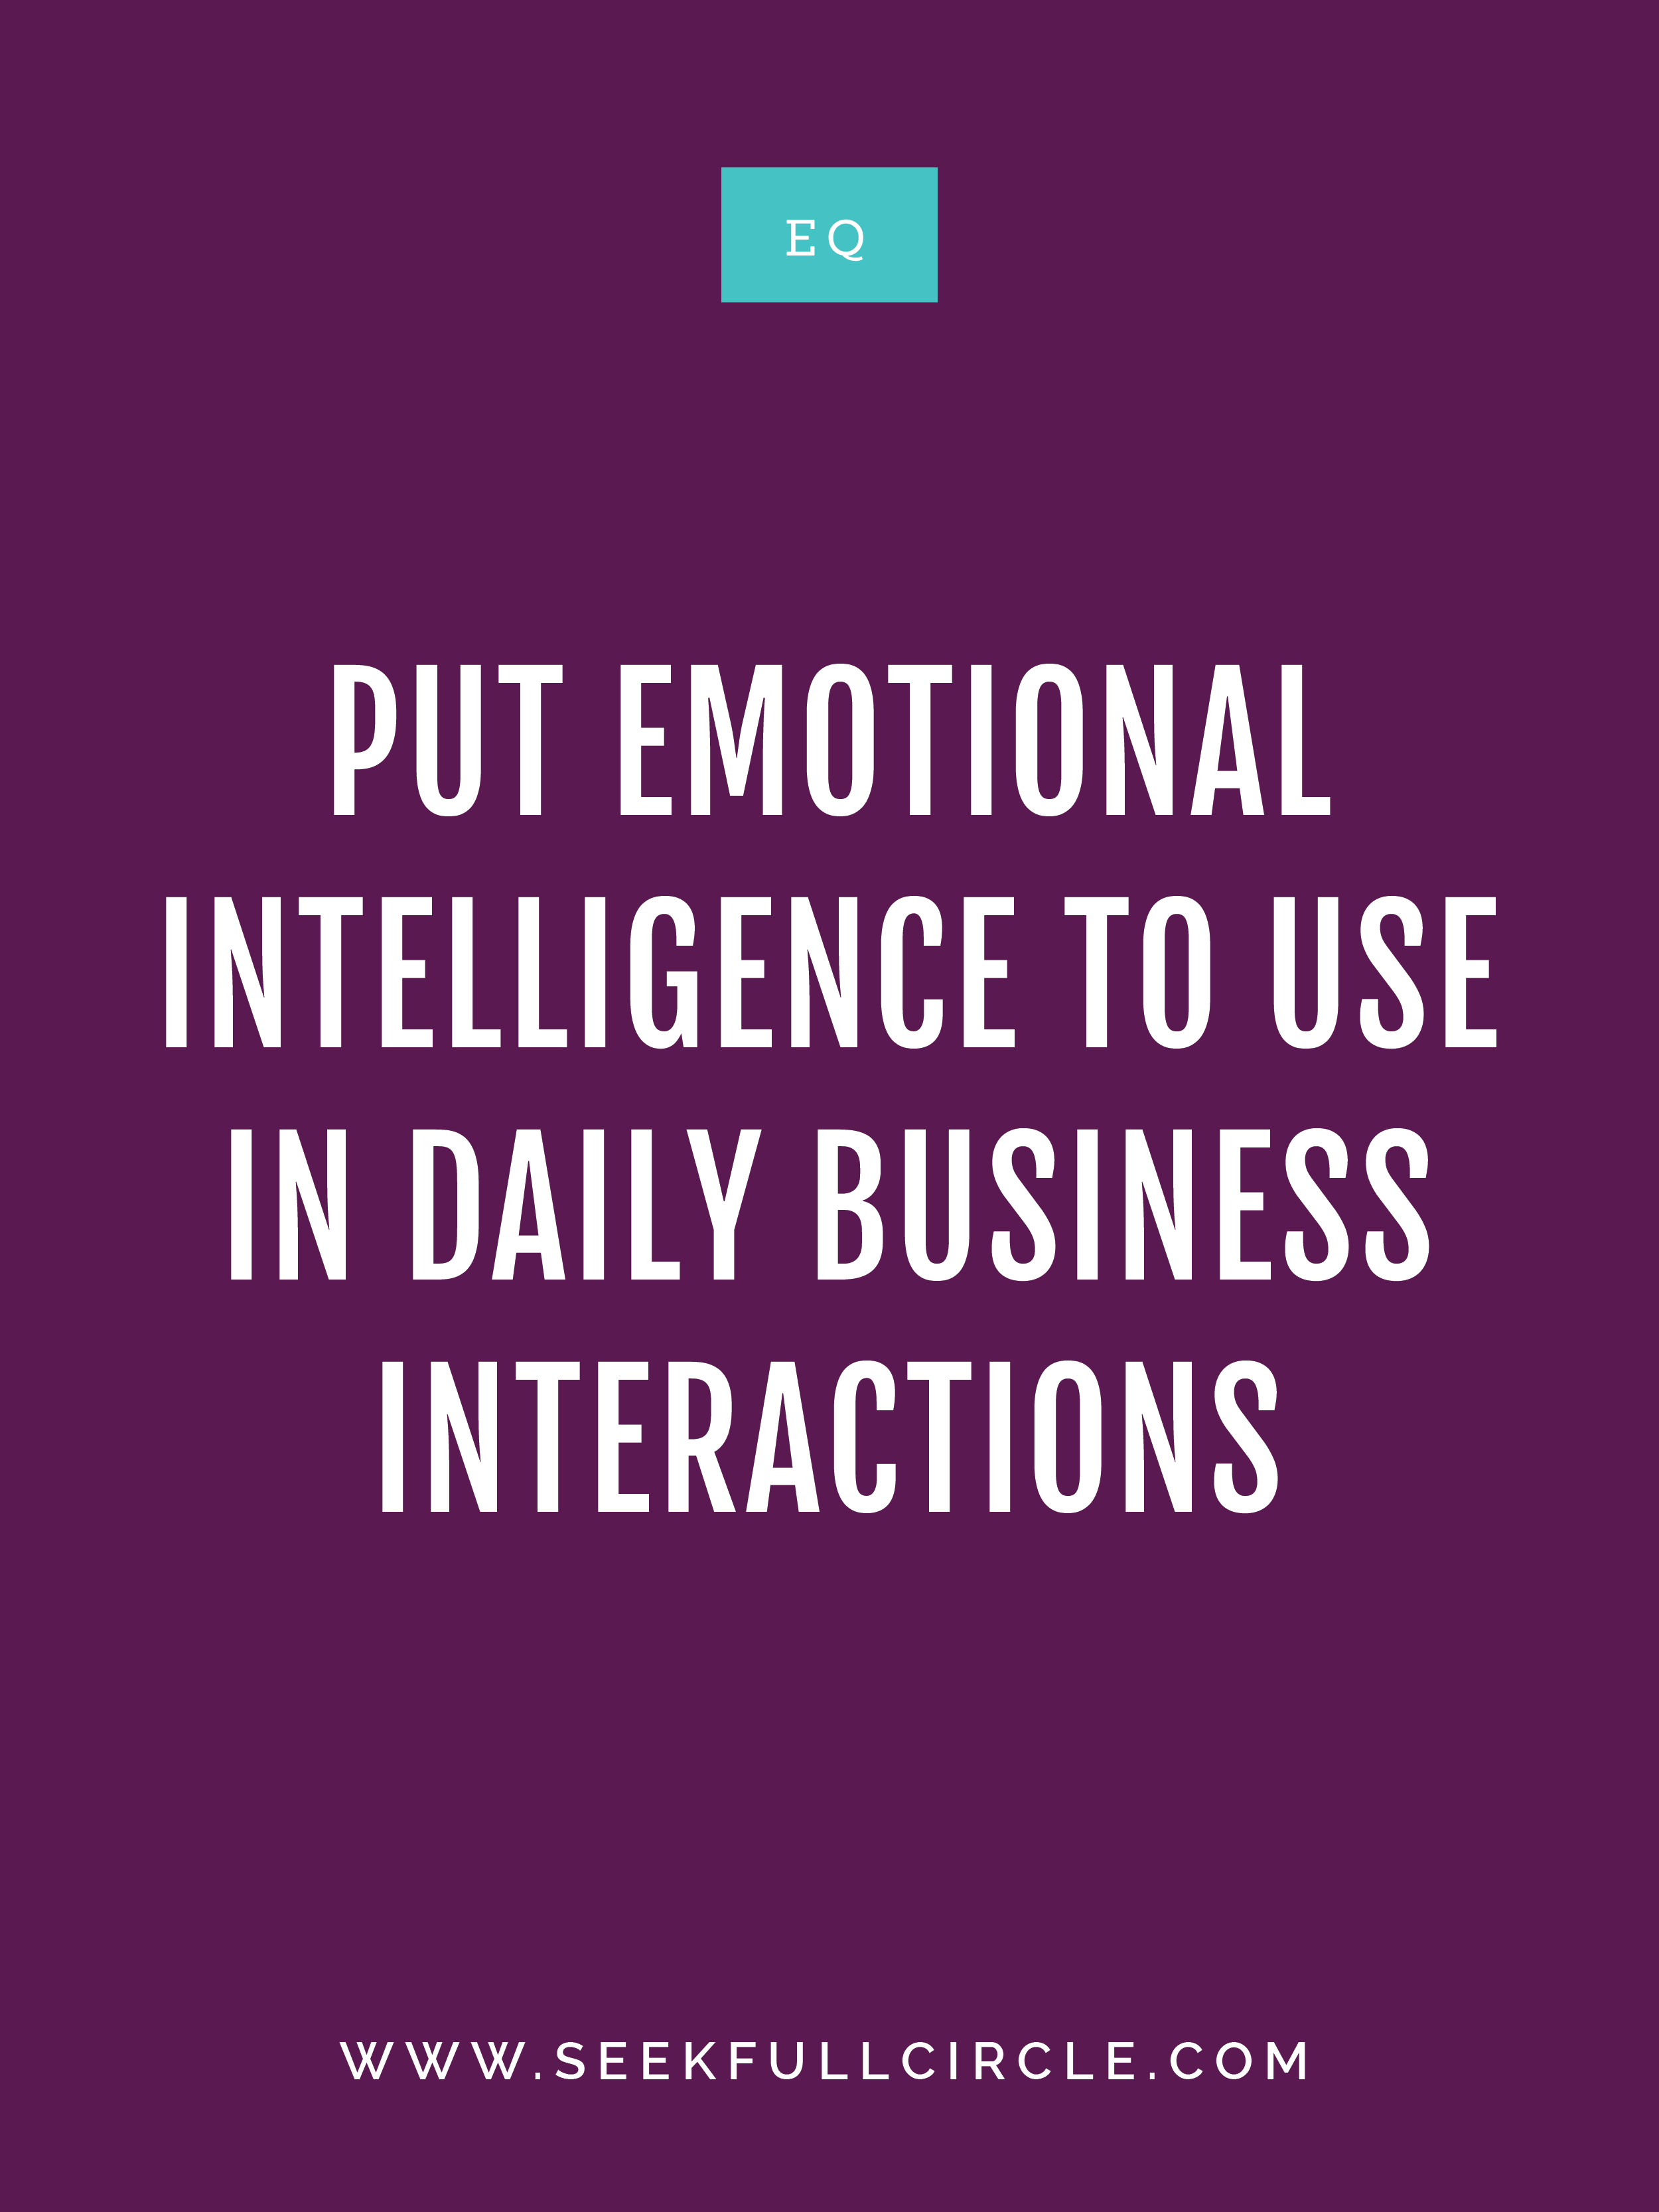 Put Emotional Intelligence to Use in Daily Business Interactions